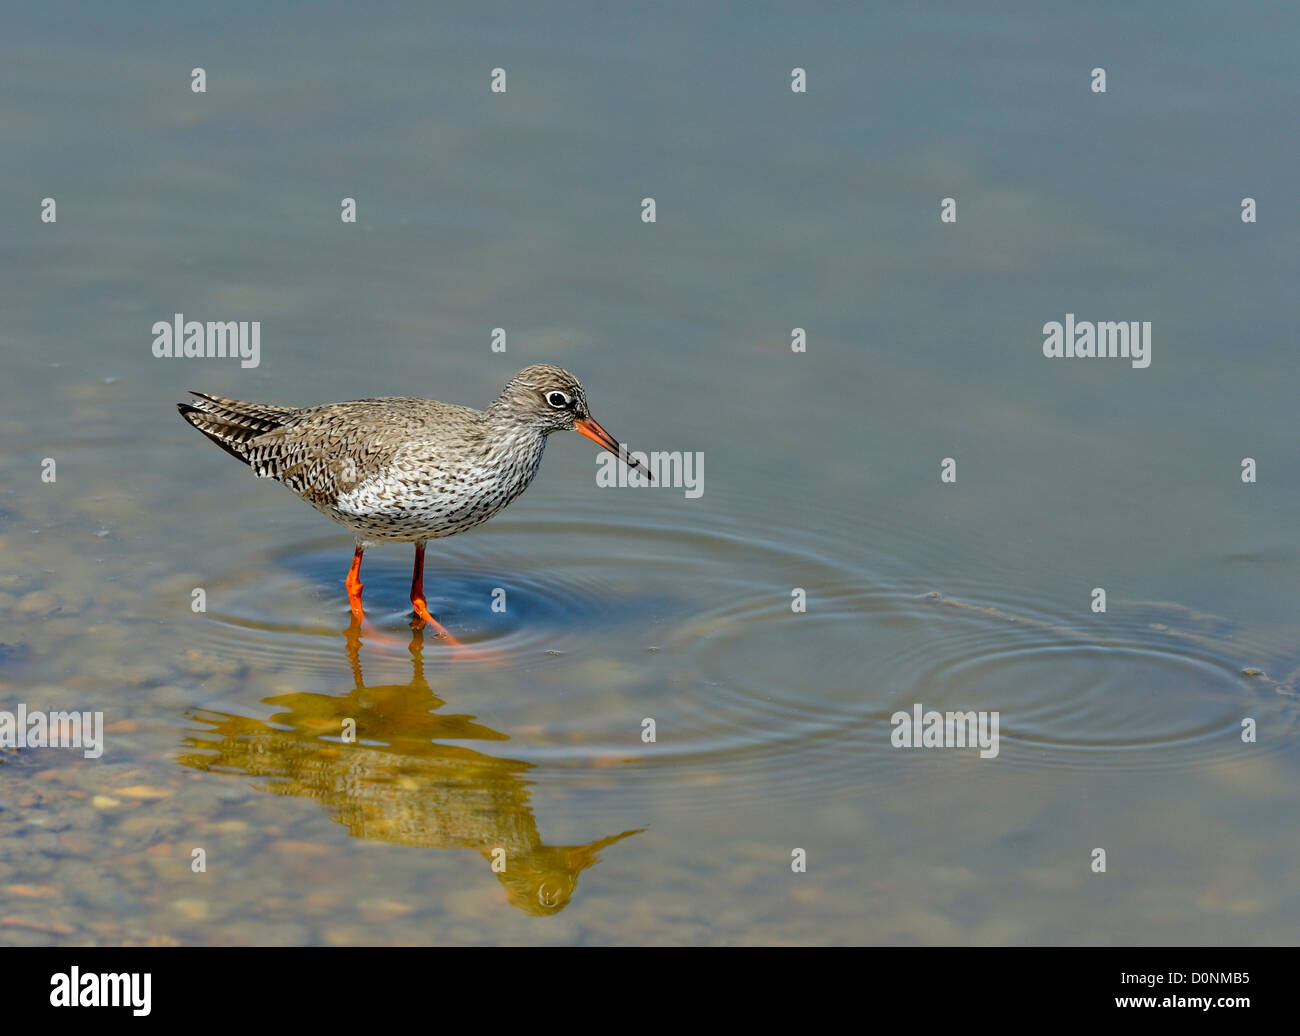 A Redshank (Tringa totanus) searches for invertebrates among the stones on the edge of a shallow lake at Rye Harbour - Stock Image